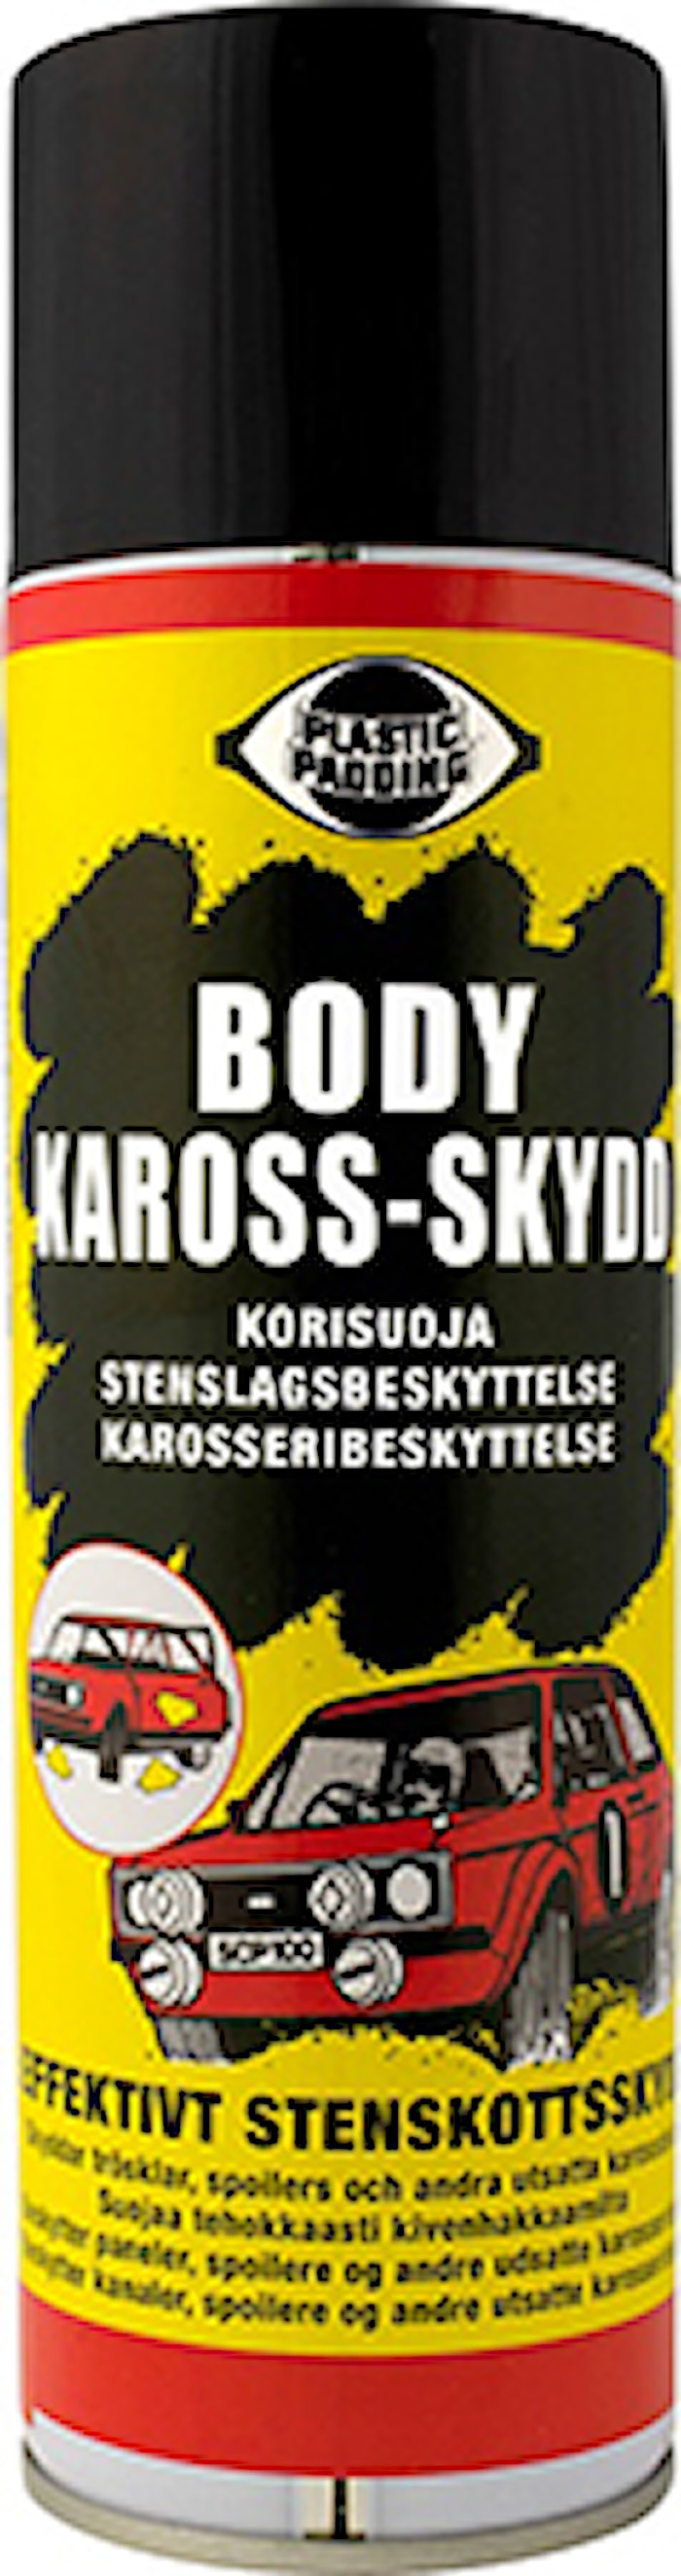 Body svart 500ml spray